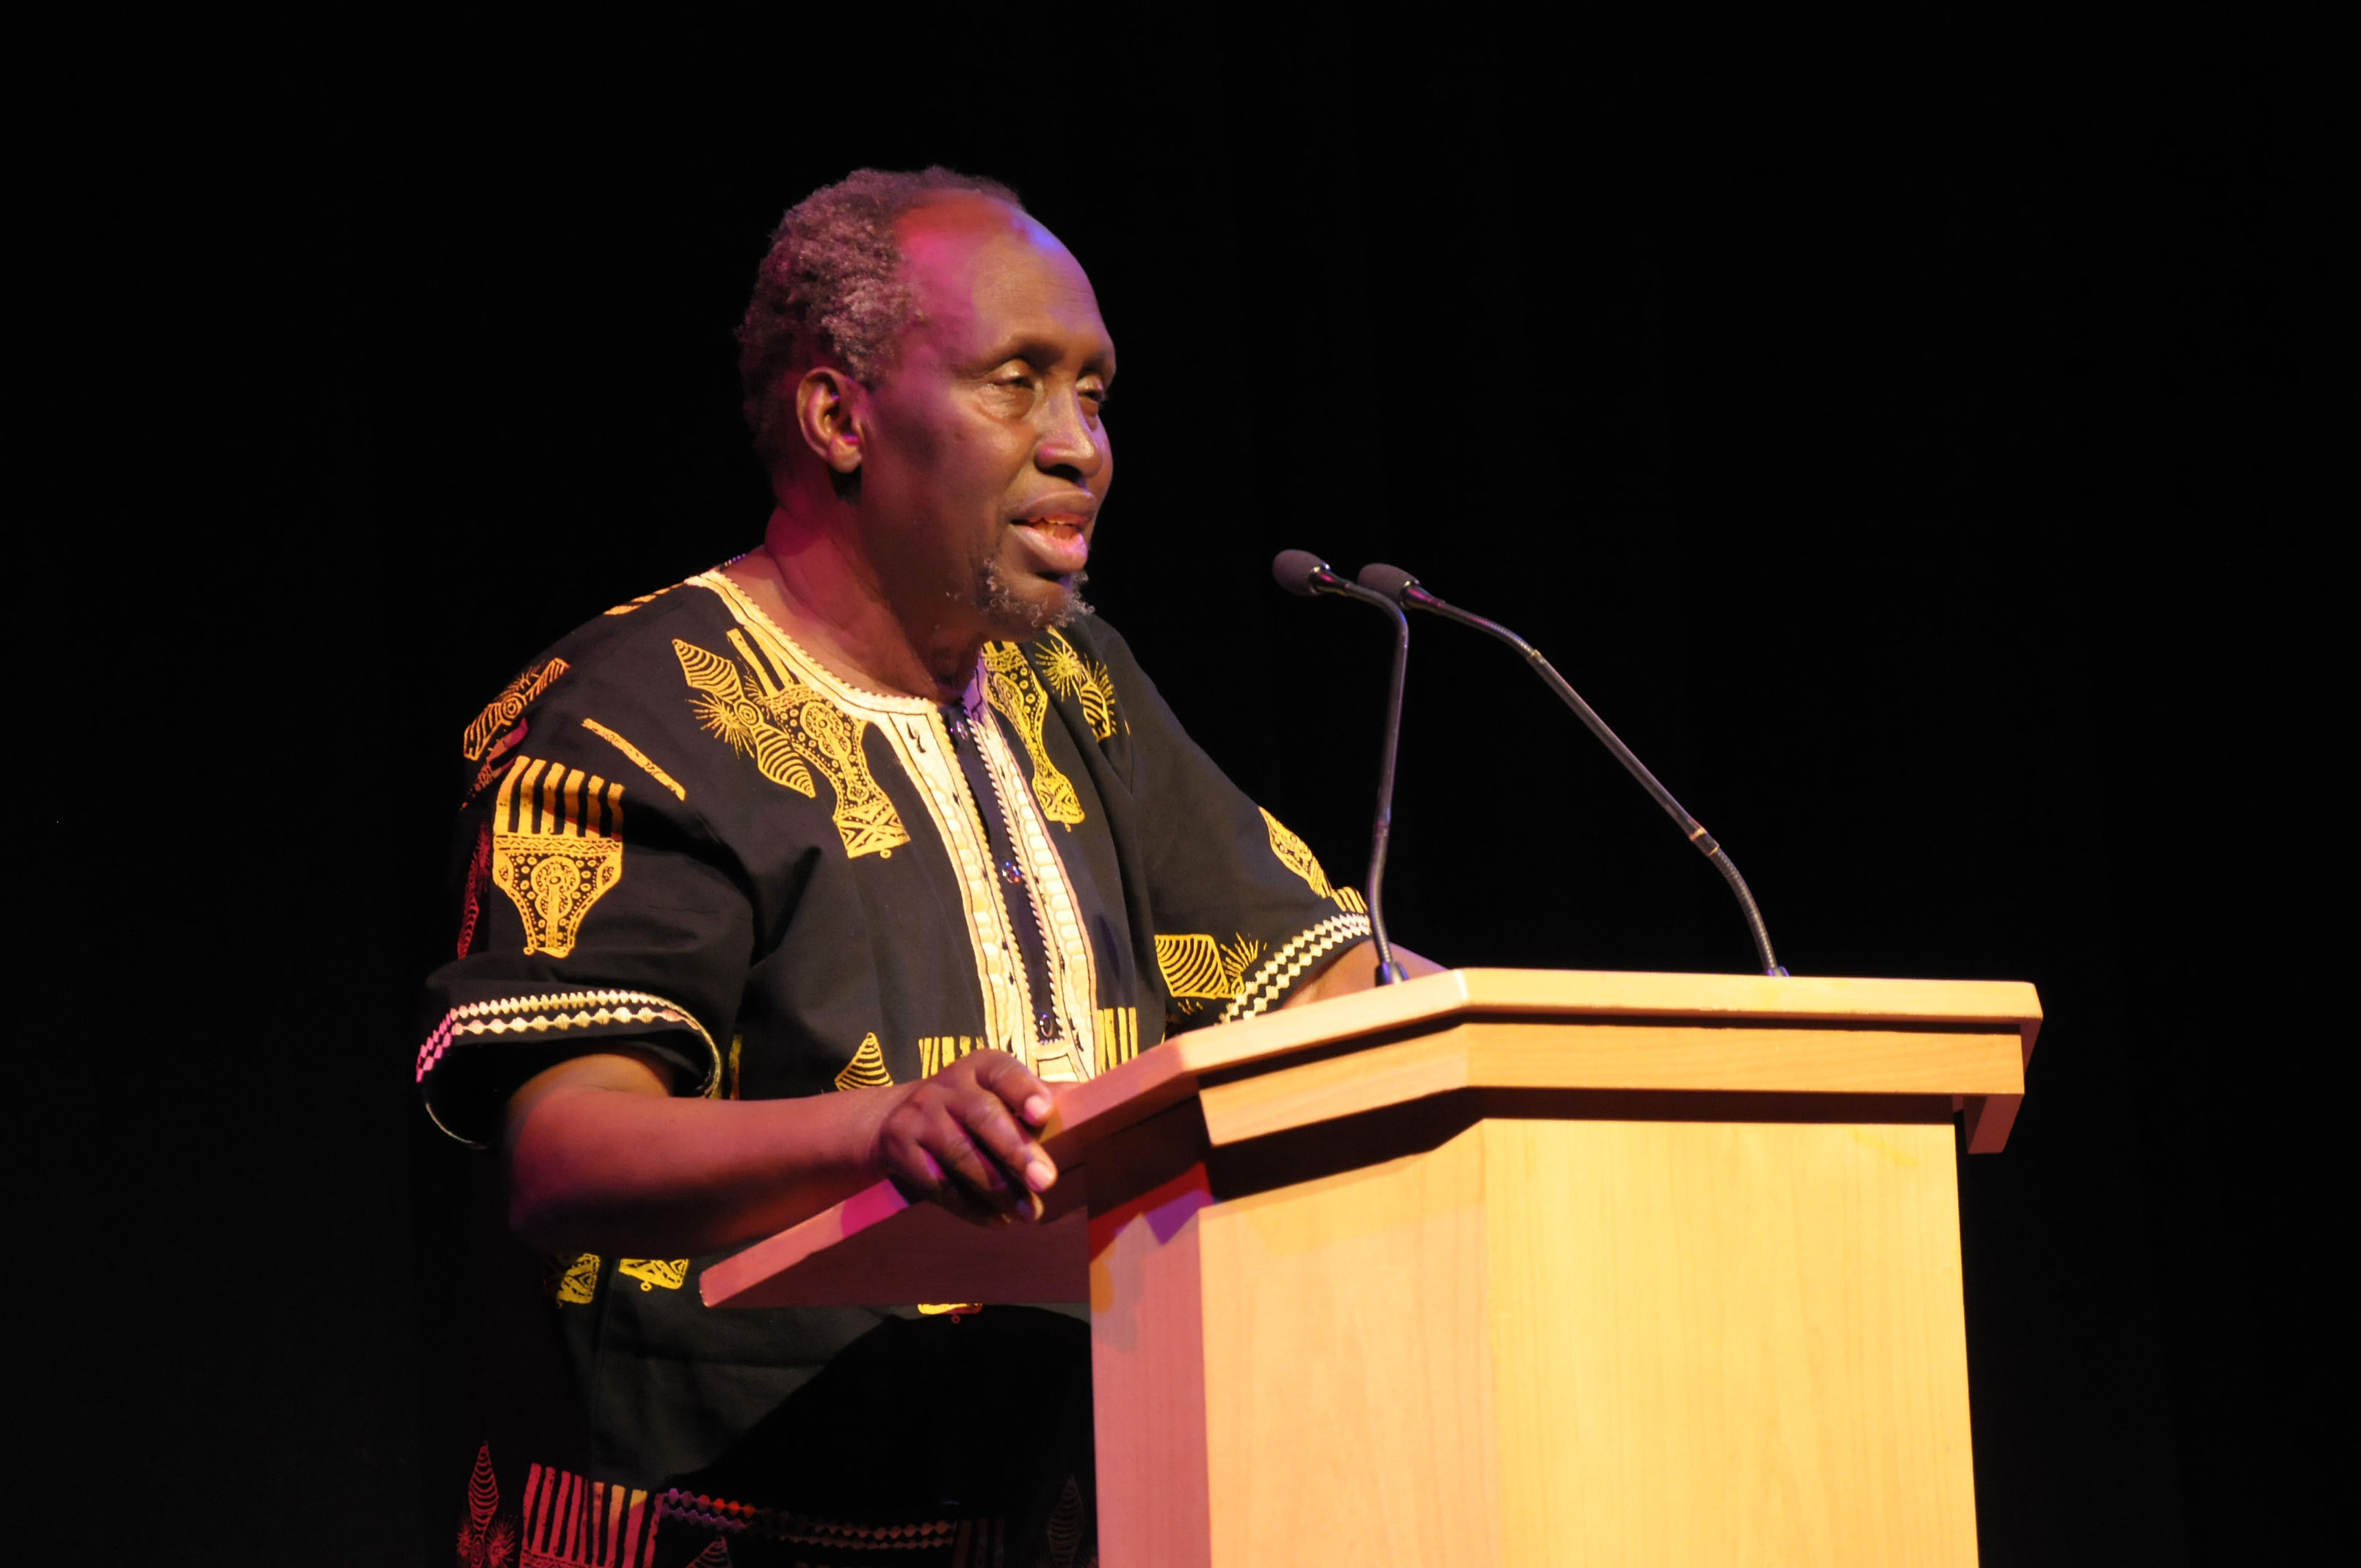 Ngugi wa Thiong'o Additional Biography